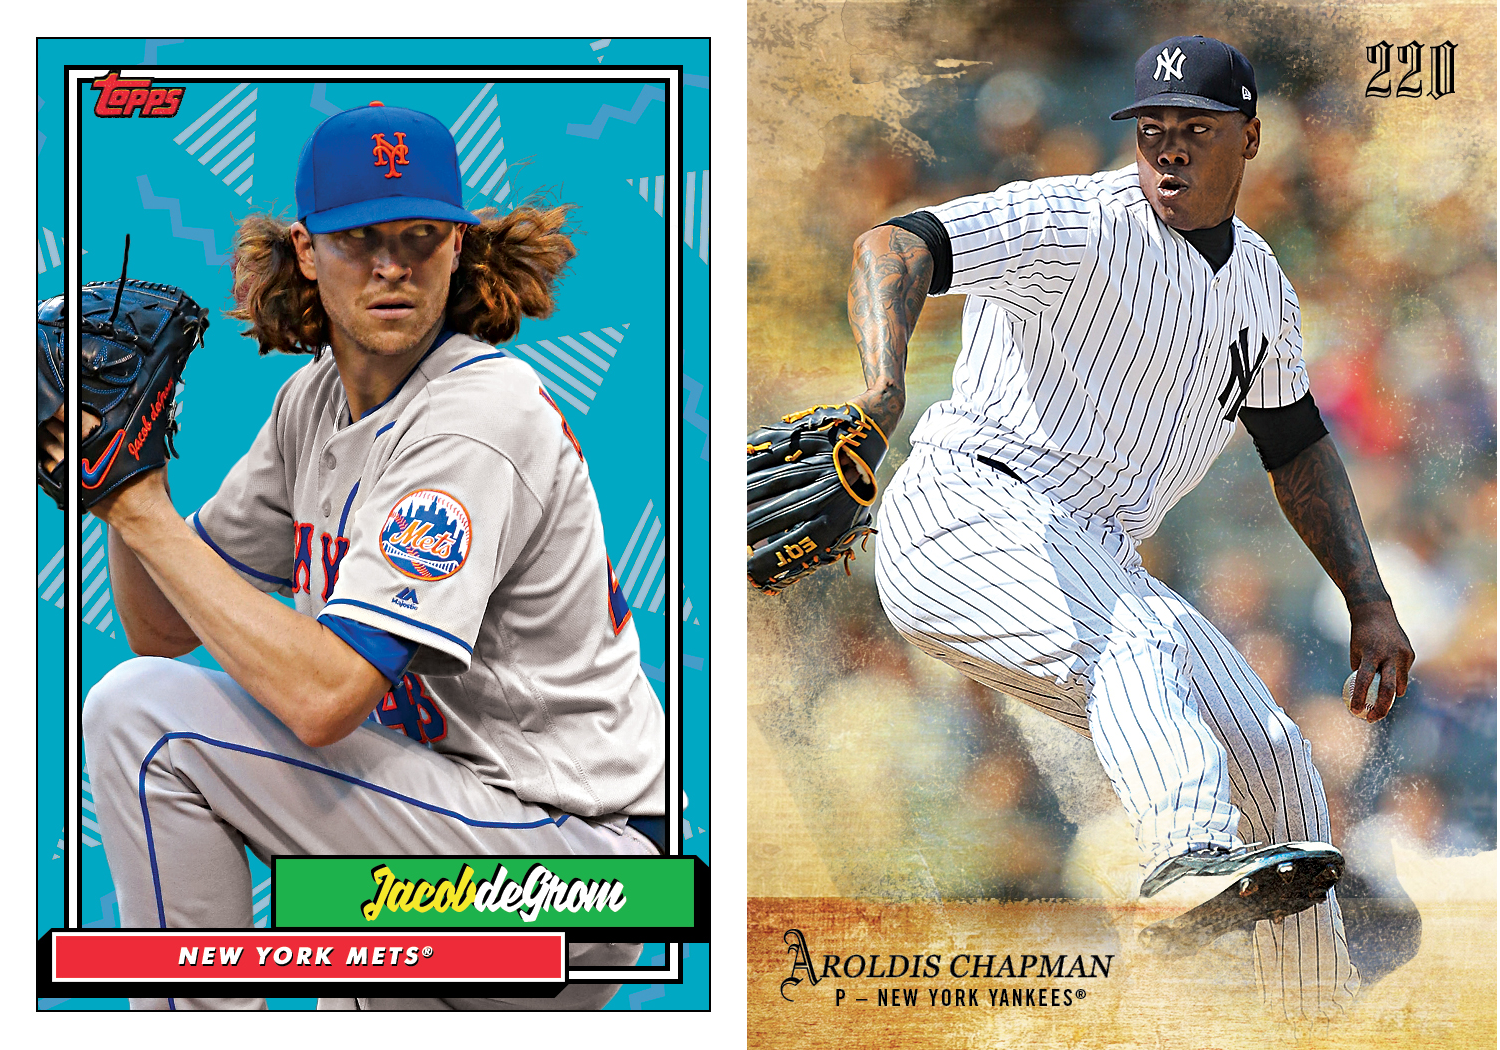 What Do Harper's Topps Picks Say About His 2019 Destination?